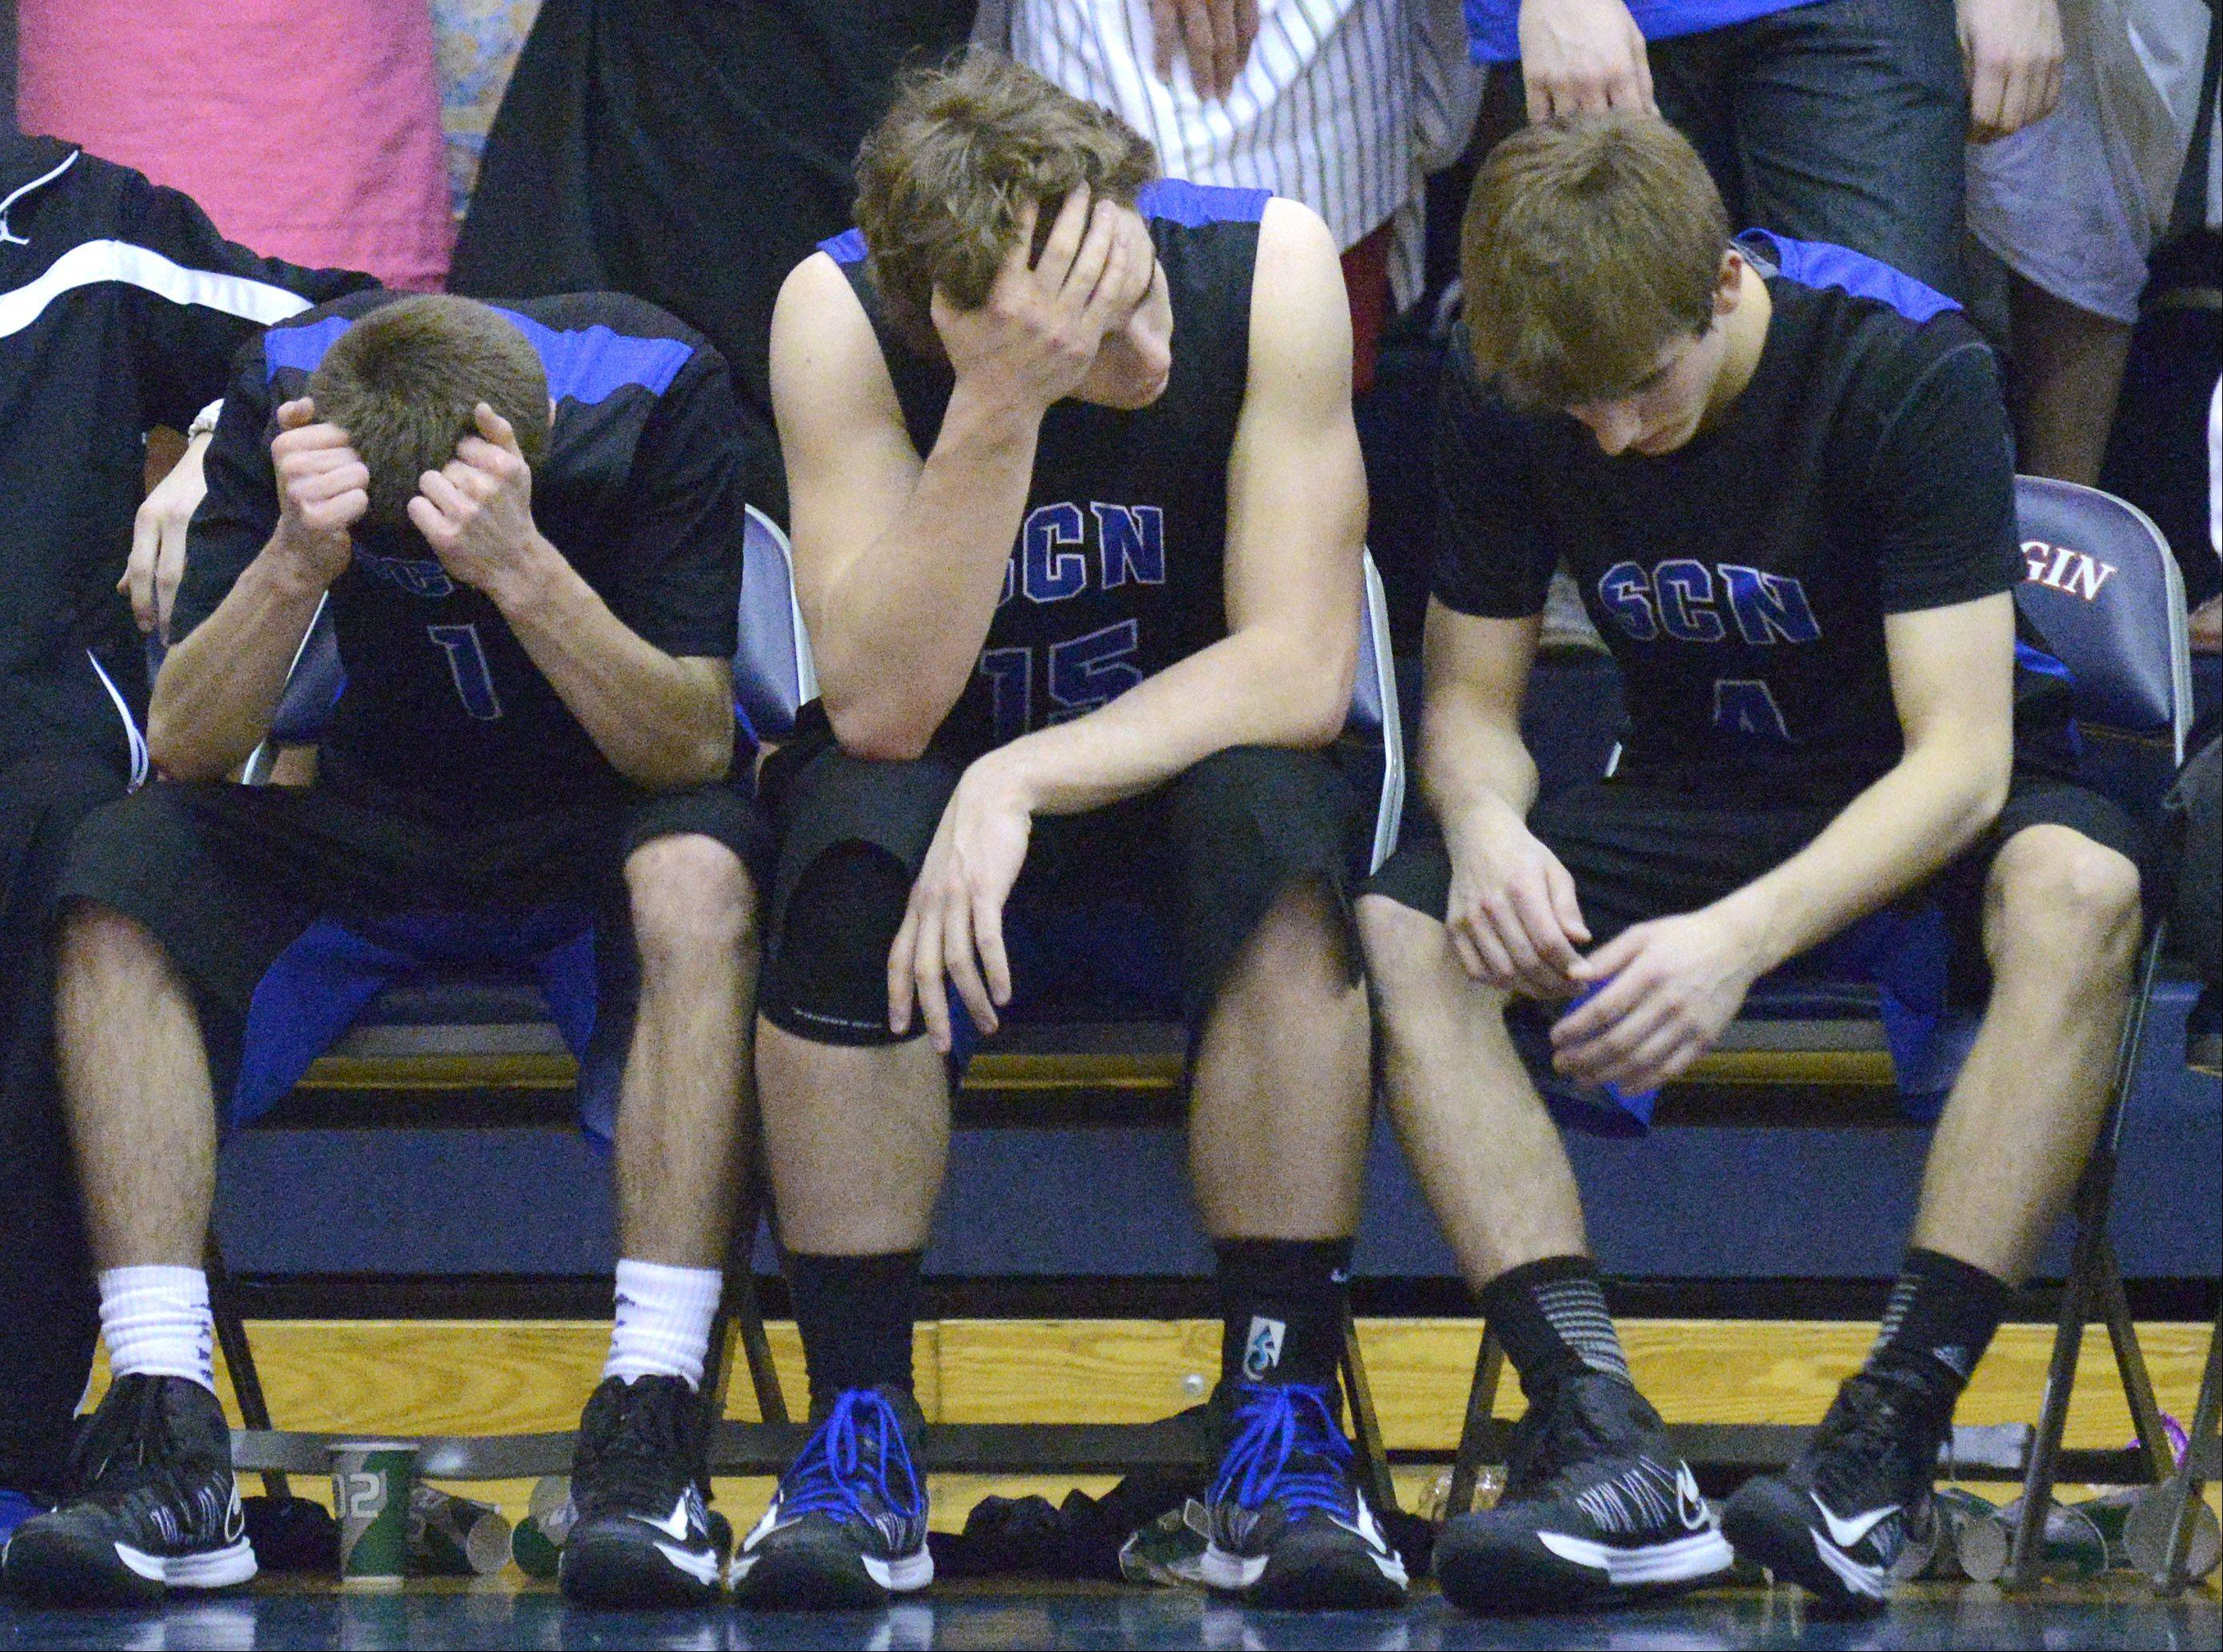 St. Charles North's Alec Goetz, Erik Miller and Jake Ludwig react as the final seconds on the clock wind down.